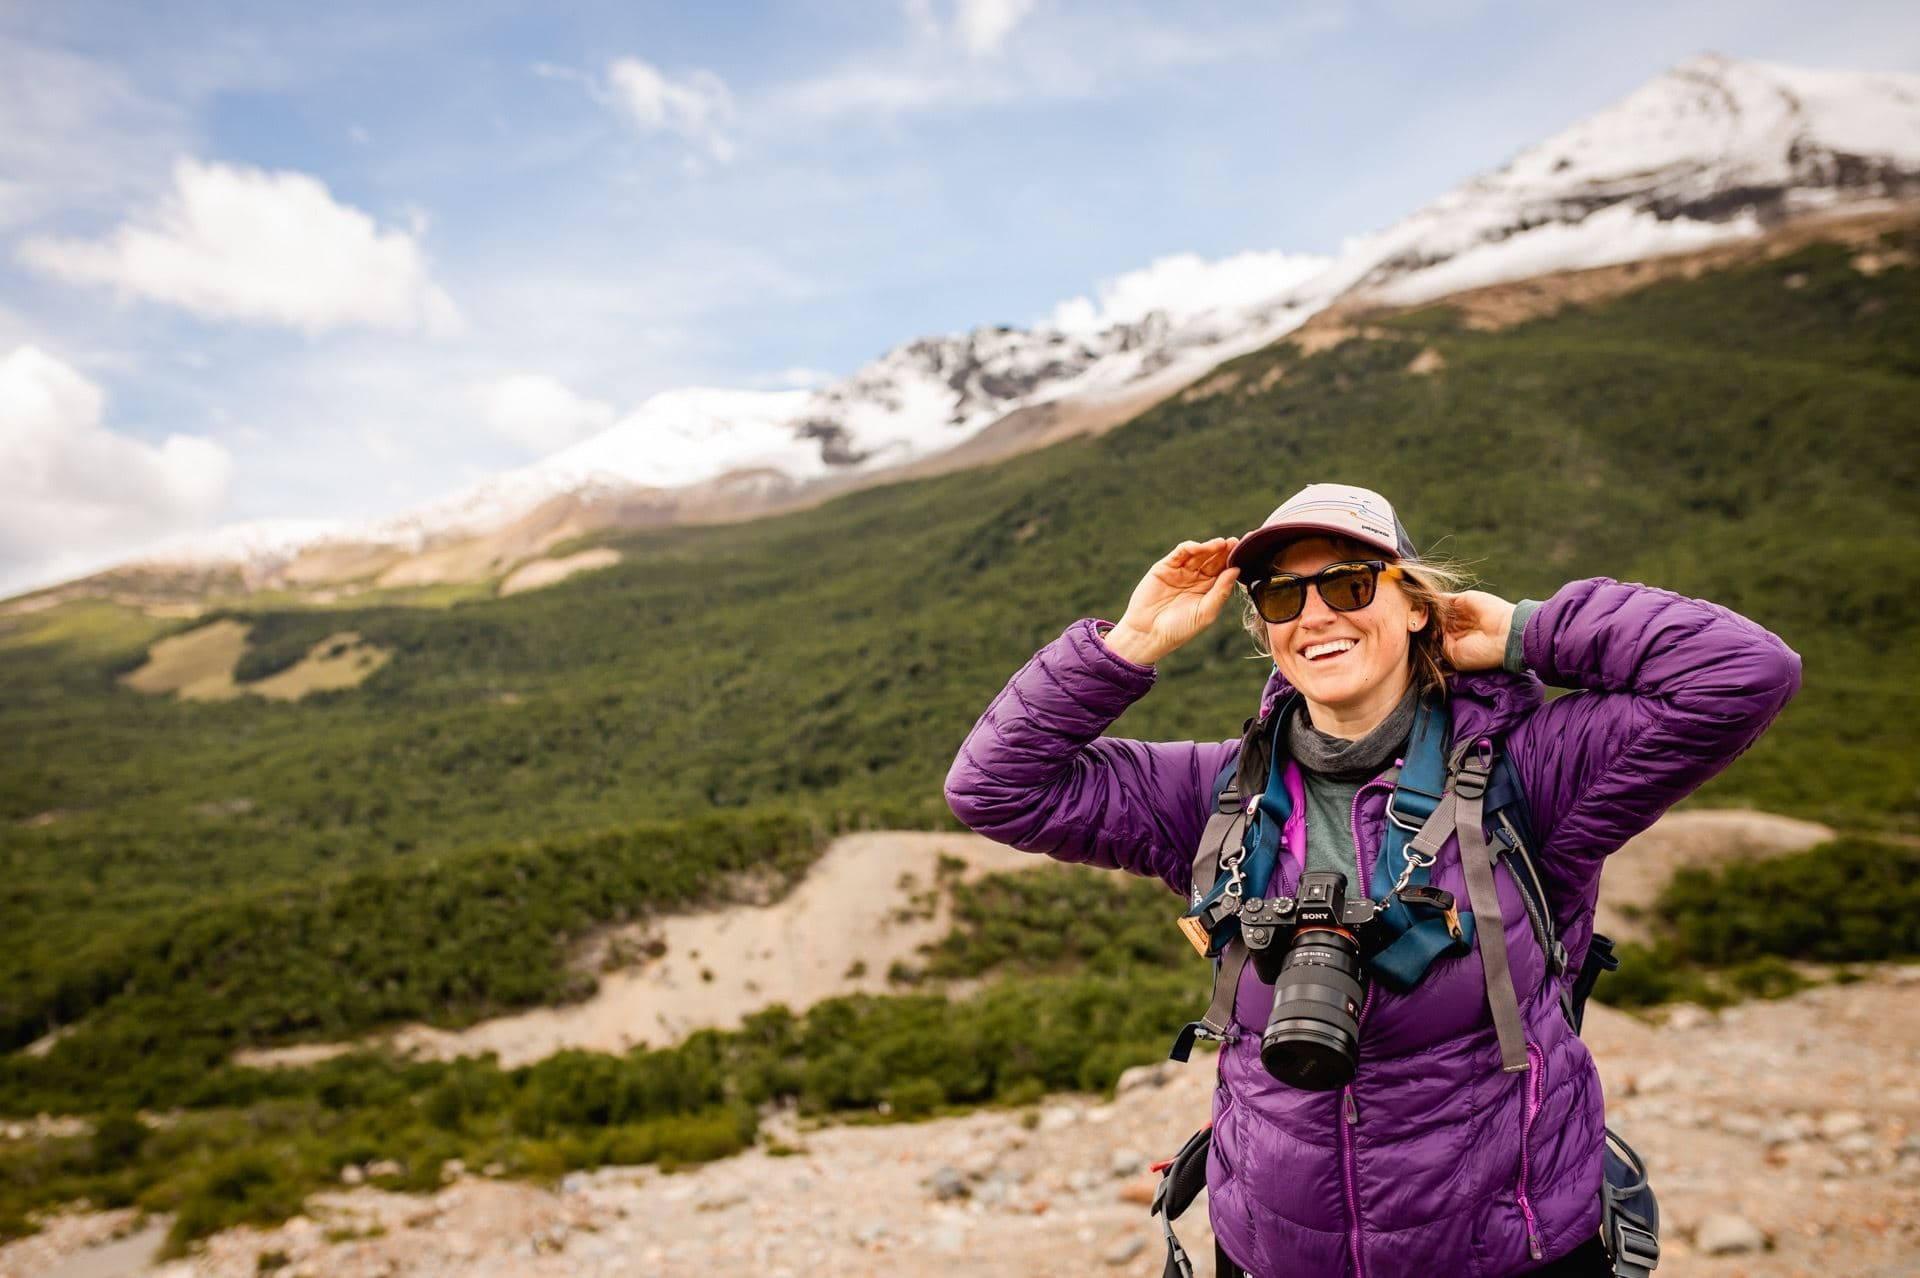 Essential Tips for Comfortably Hiking with a Camera